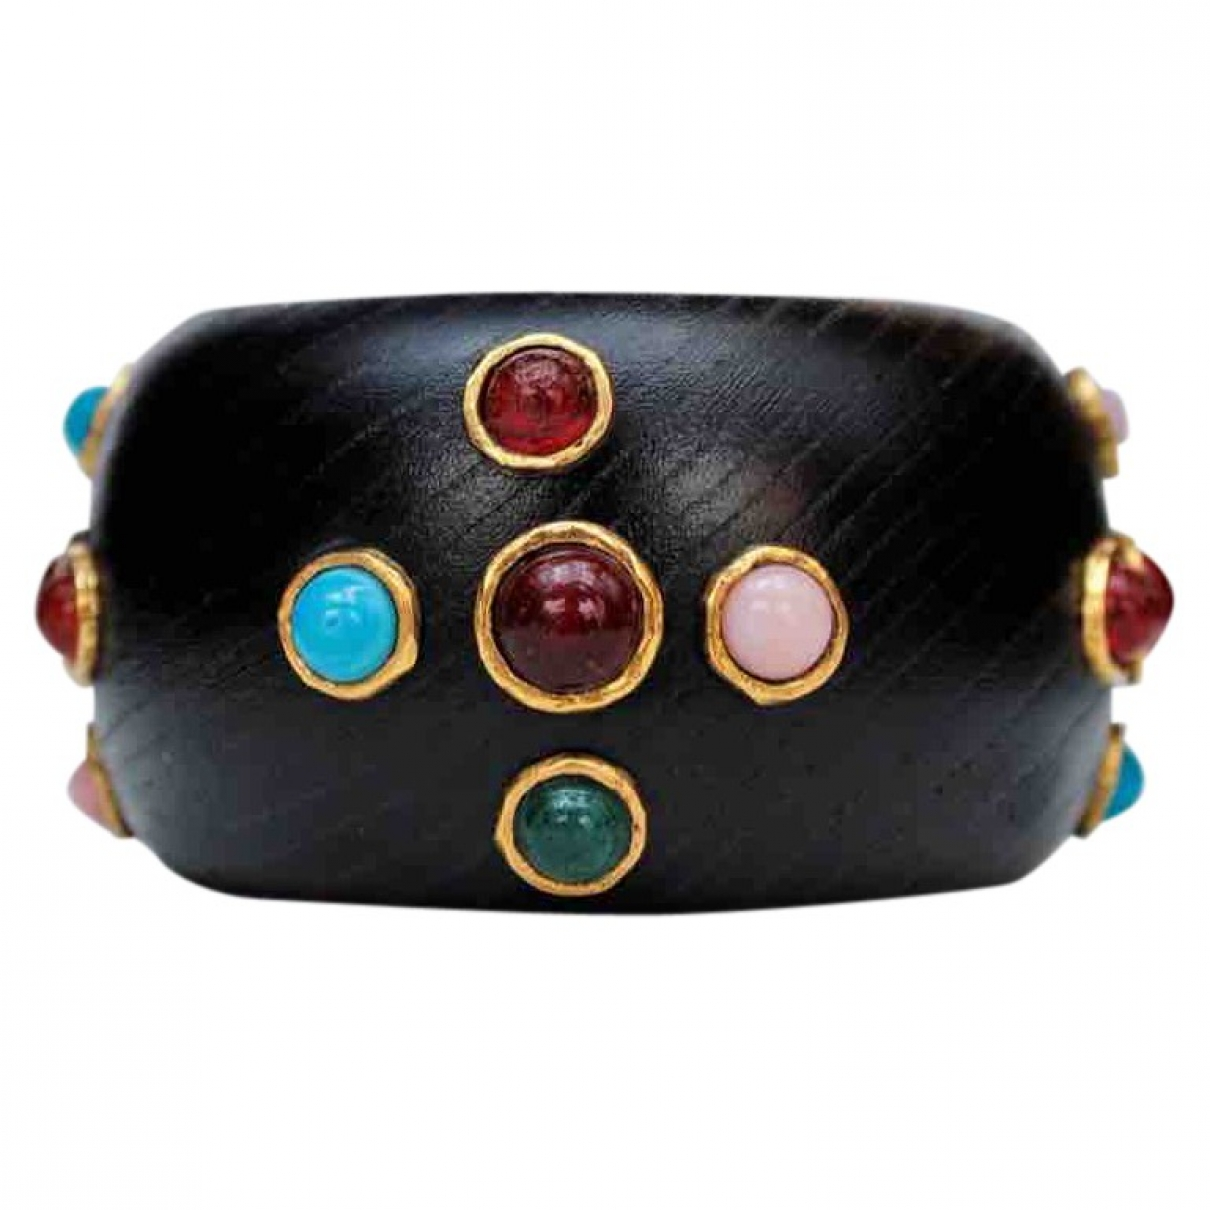 Chanel Baroque Armband in Holz